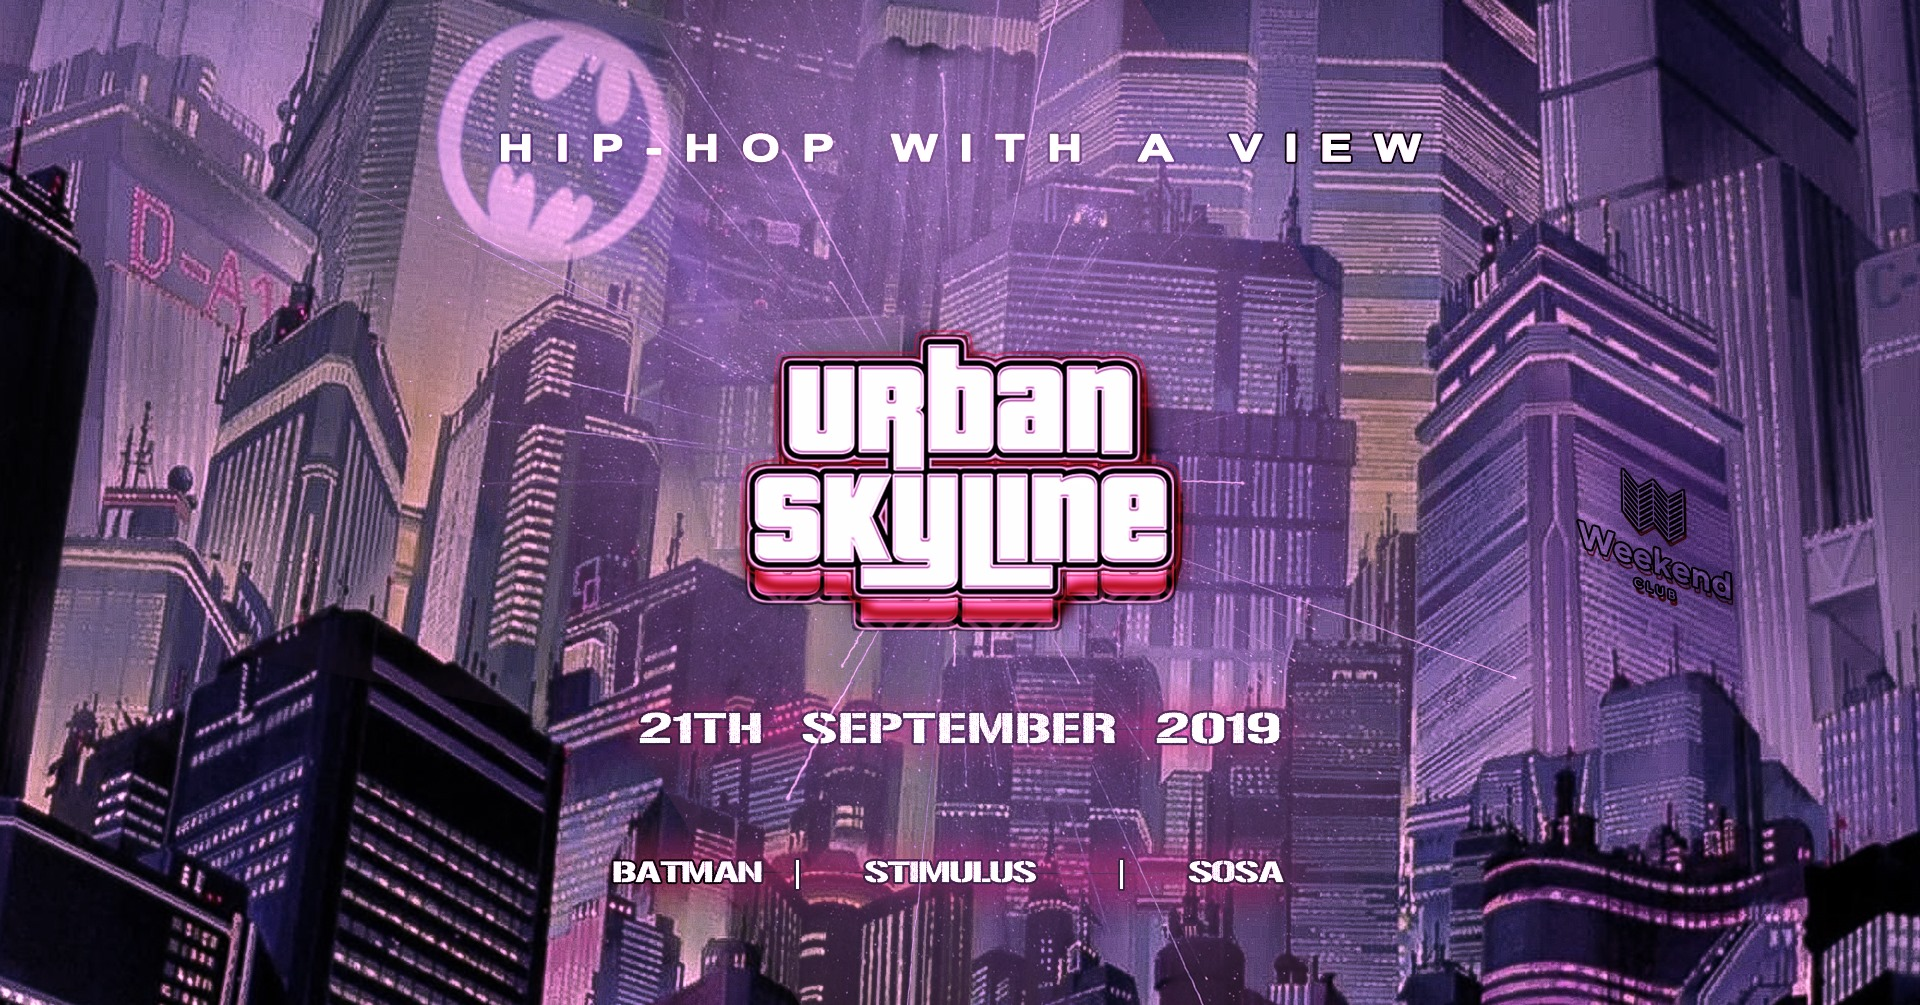 Urban Skyline Hip Hop with a view  We call it ,highest turn up in town'  Once a month we invite people to our Family & Friends meet up in our loving living room and they know what is expecting them. Greatest view over the City with bomb turn up vibes. We create an interaction with people on the dance floor and the DJ